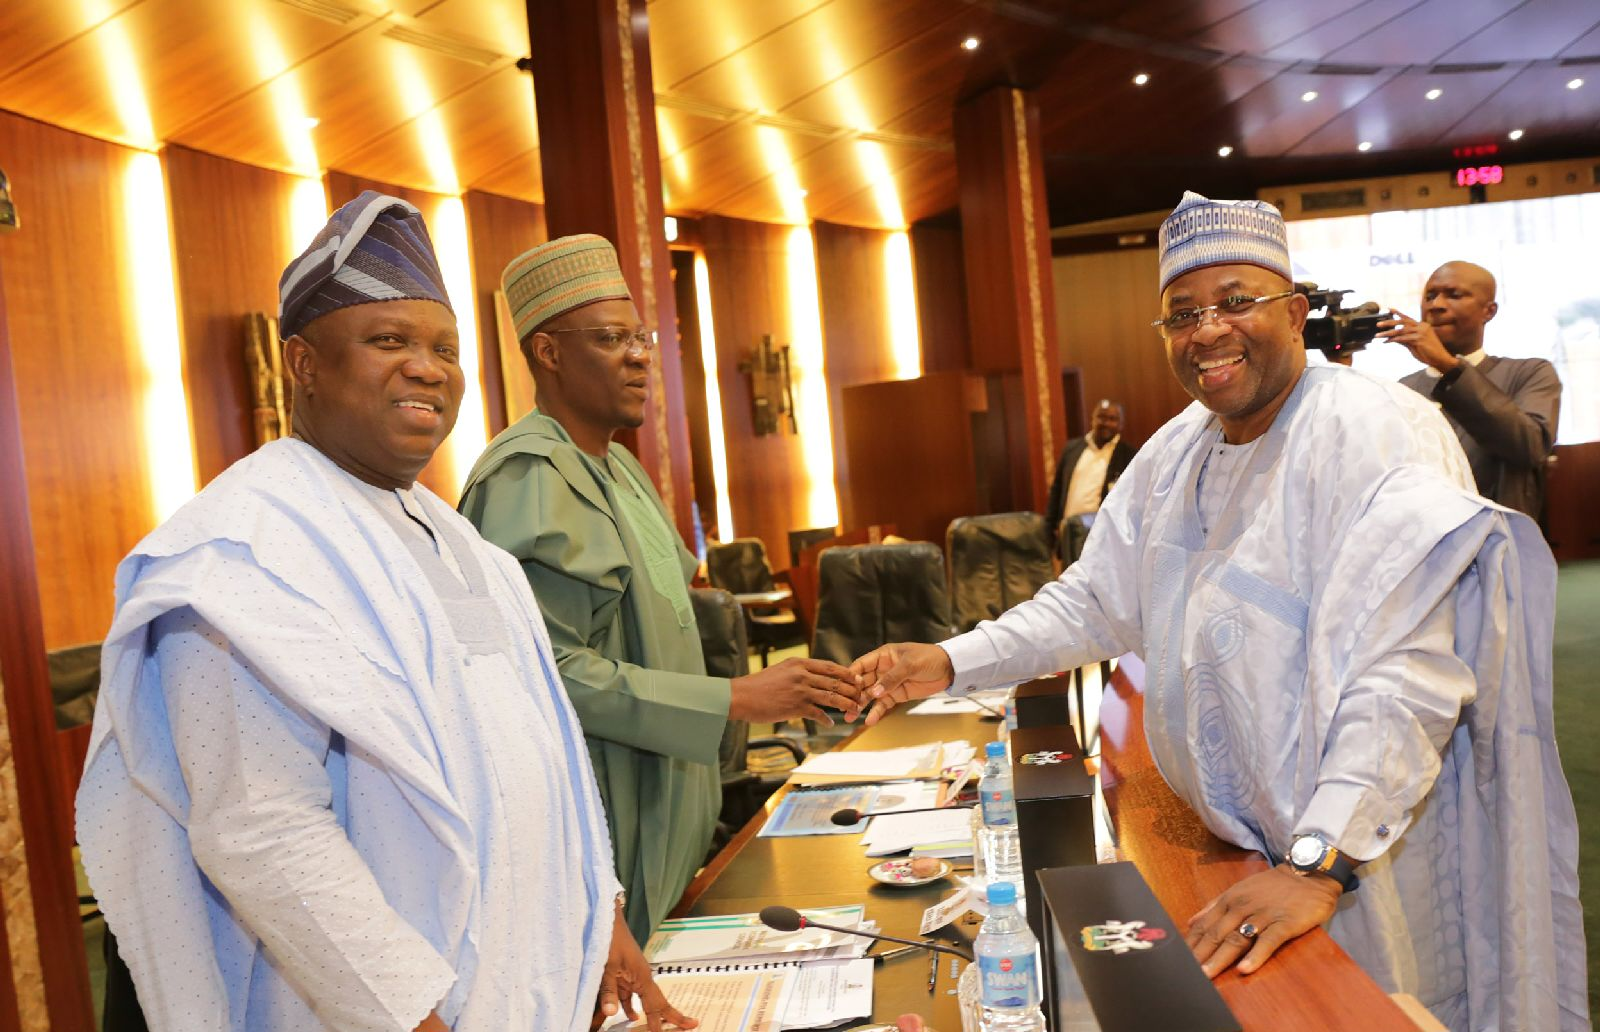 Lagos State Governor, Mr. Akinwunmi Ambode attends NEC meeting in Abuja